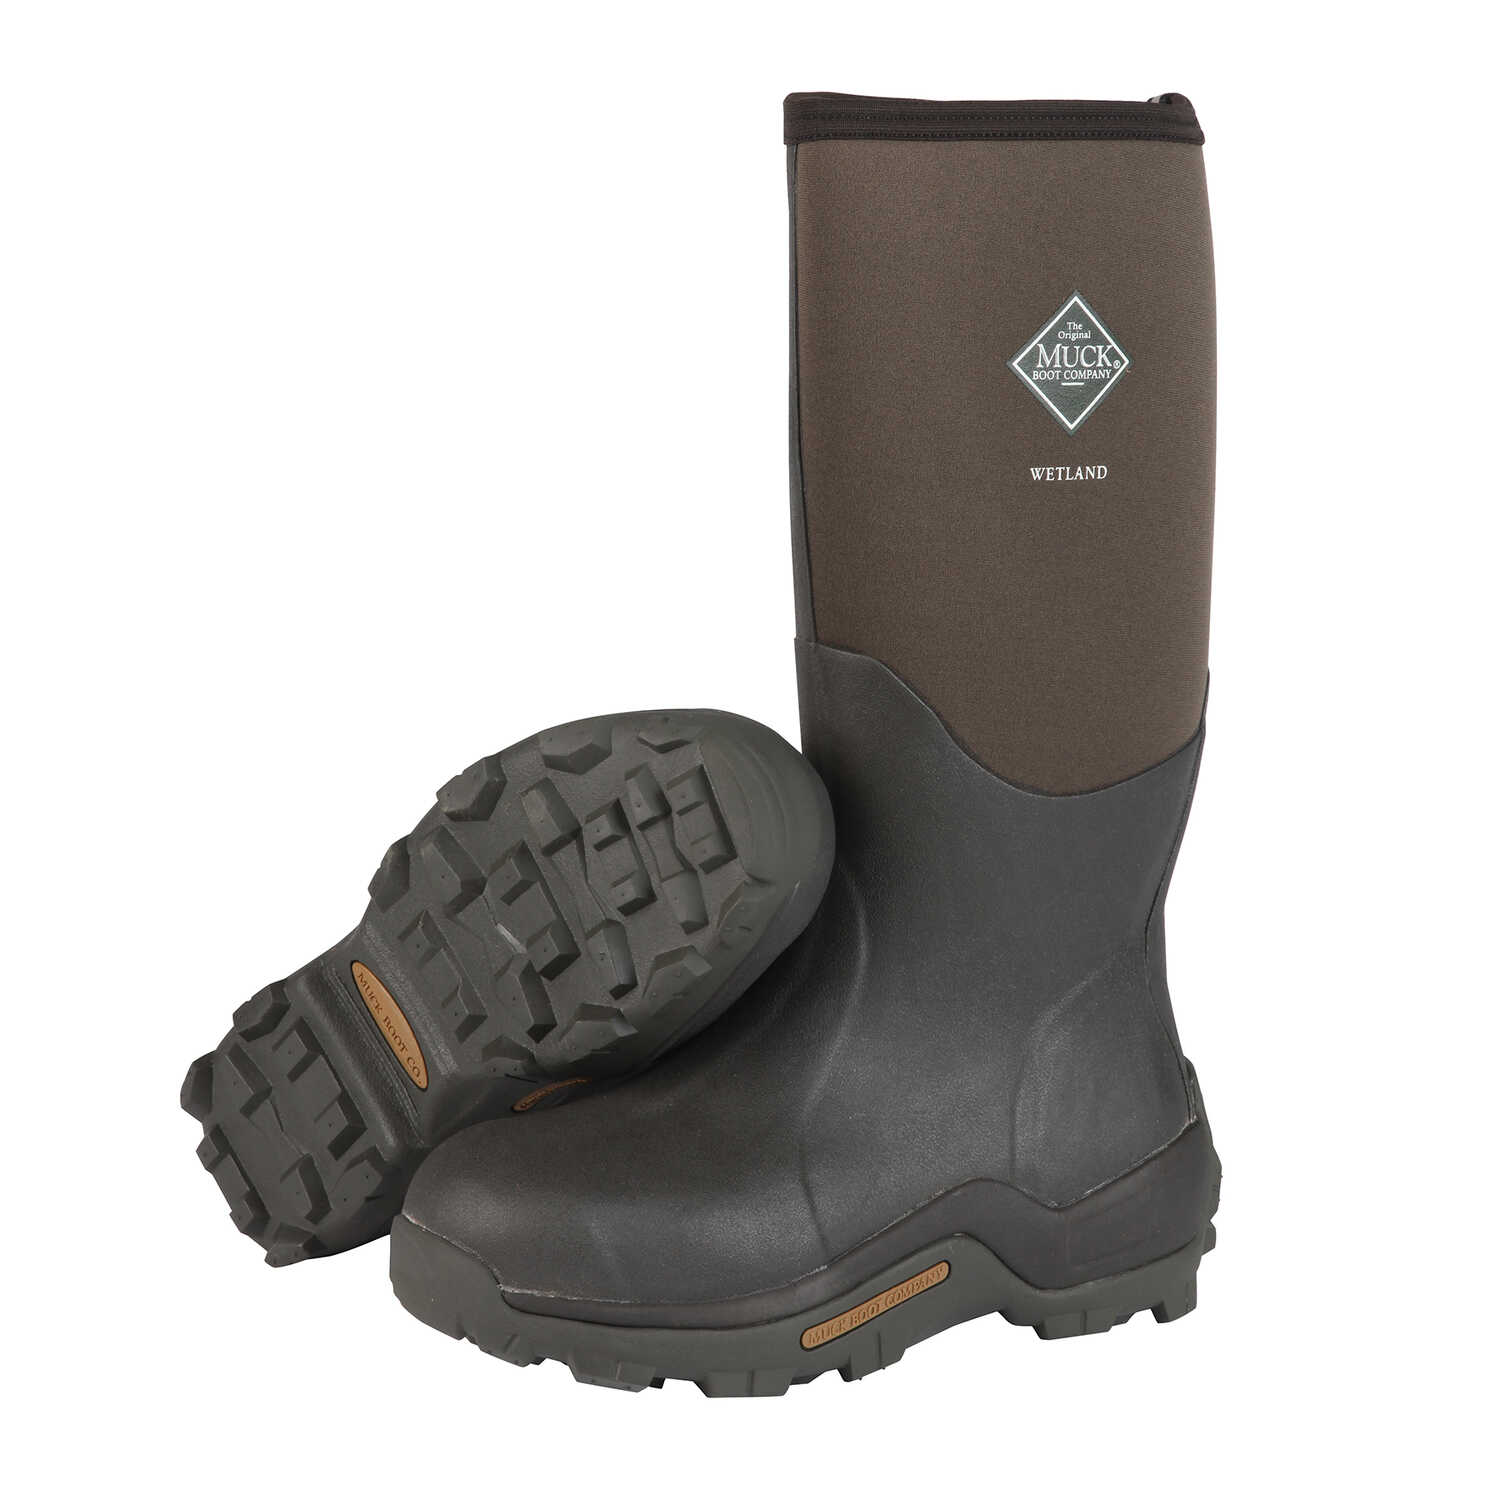 The Original Muck Boot Company  Wetland  Men's  Boots  13 US  Brown